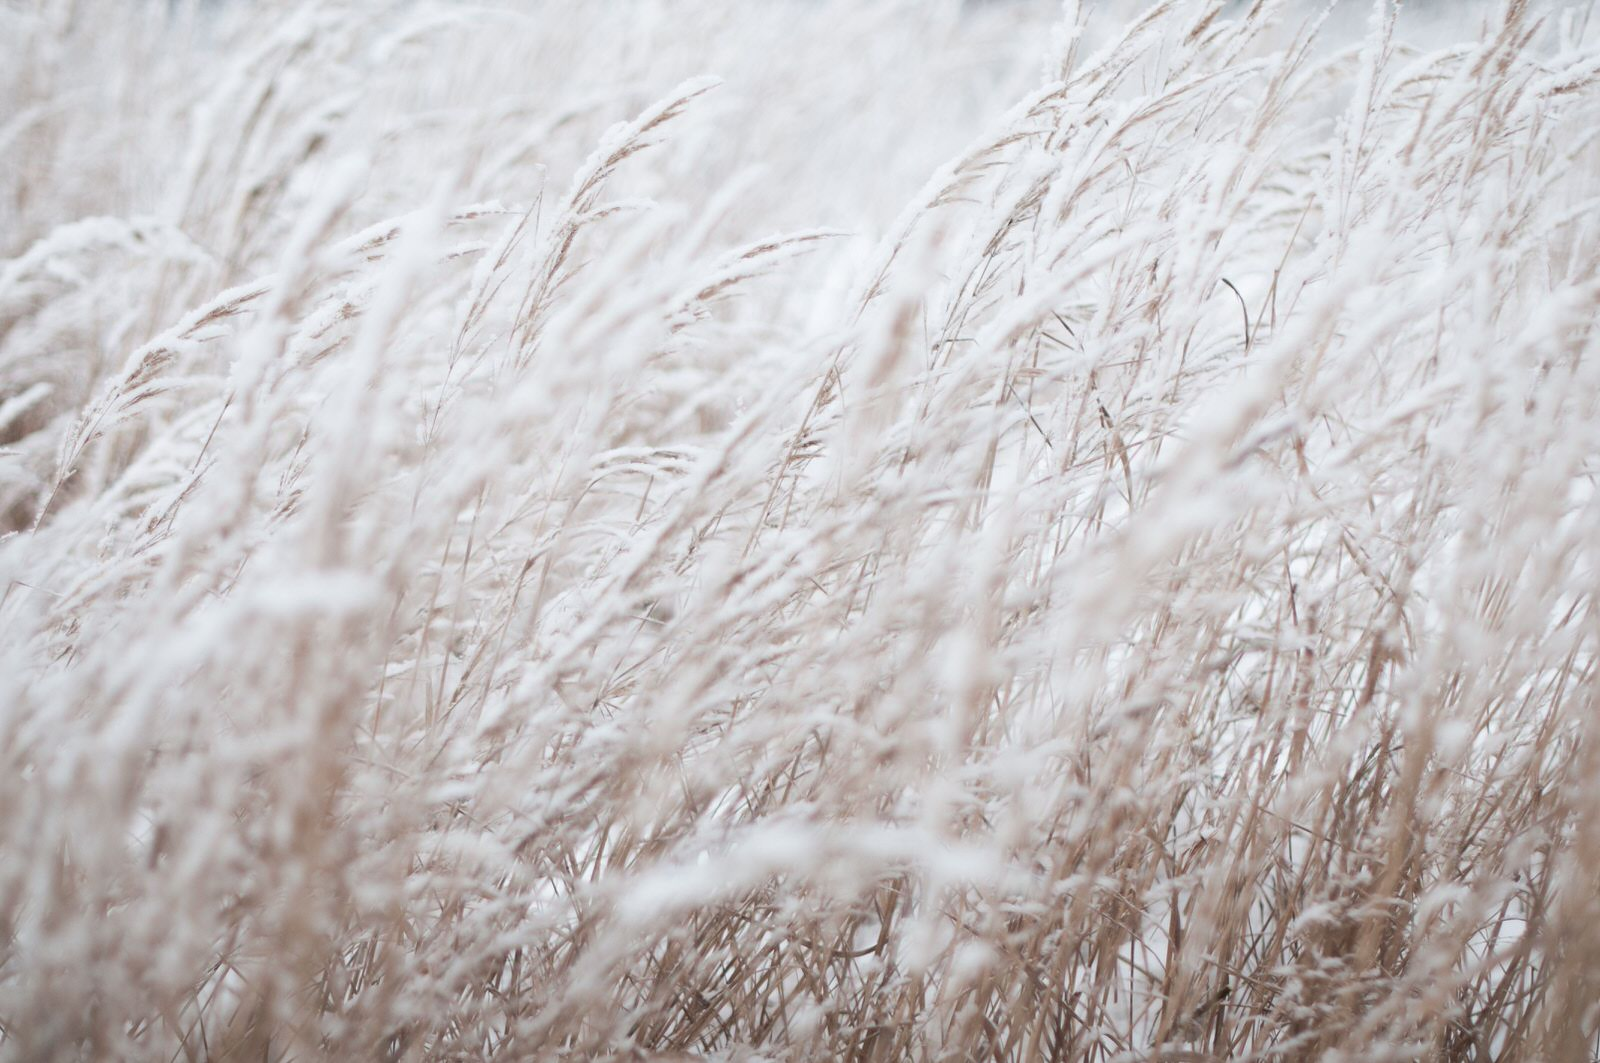 Wheat in the snow